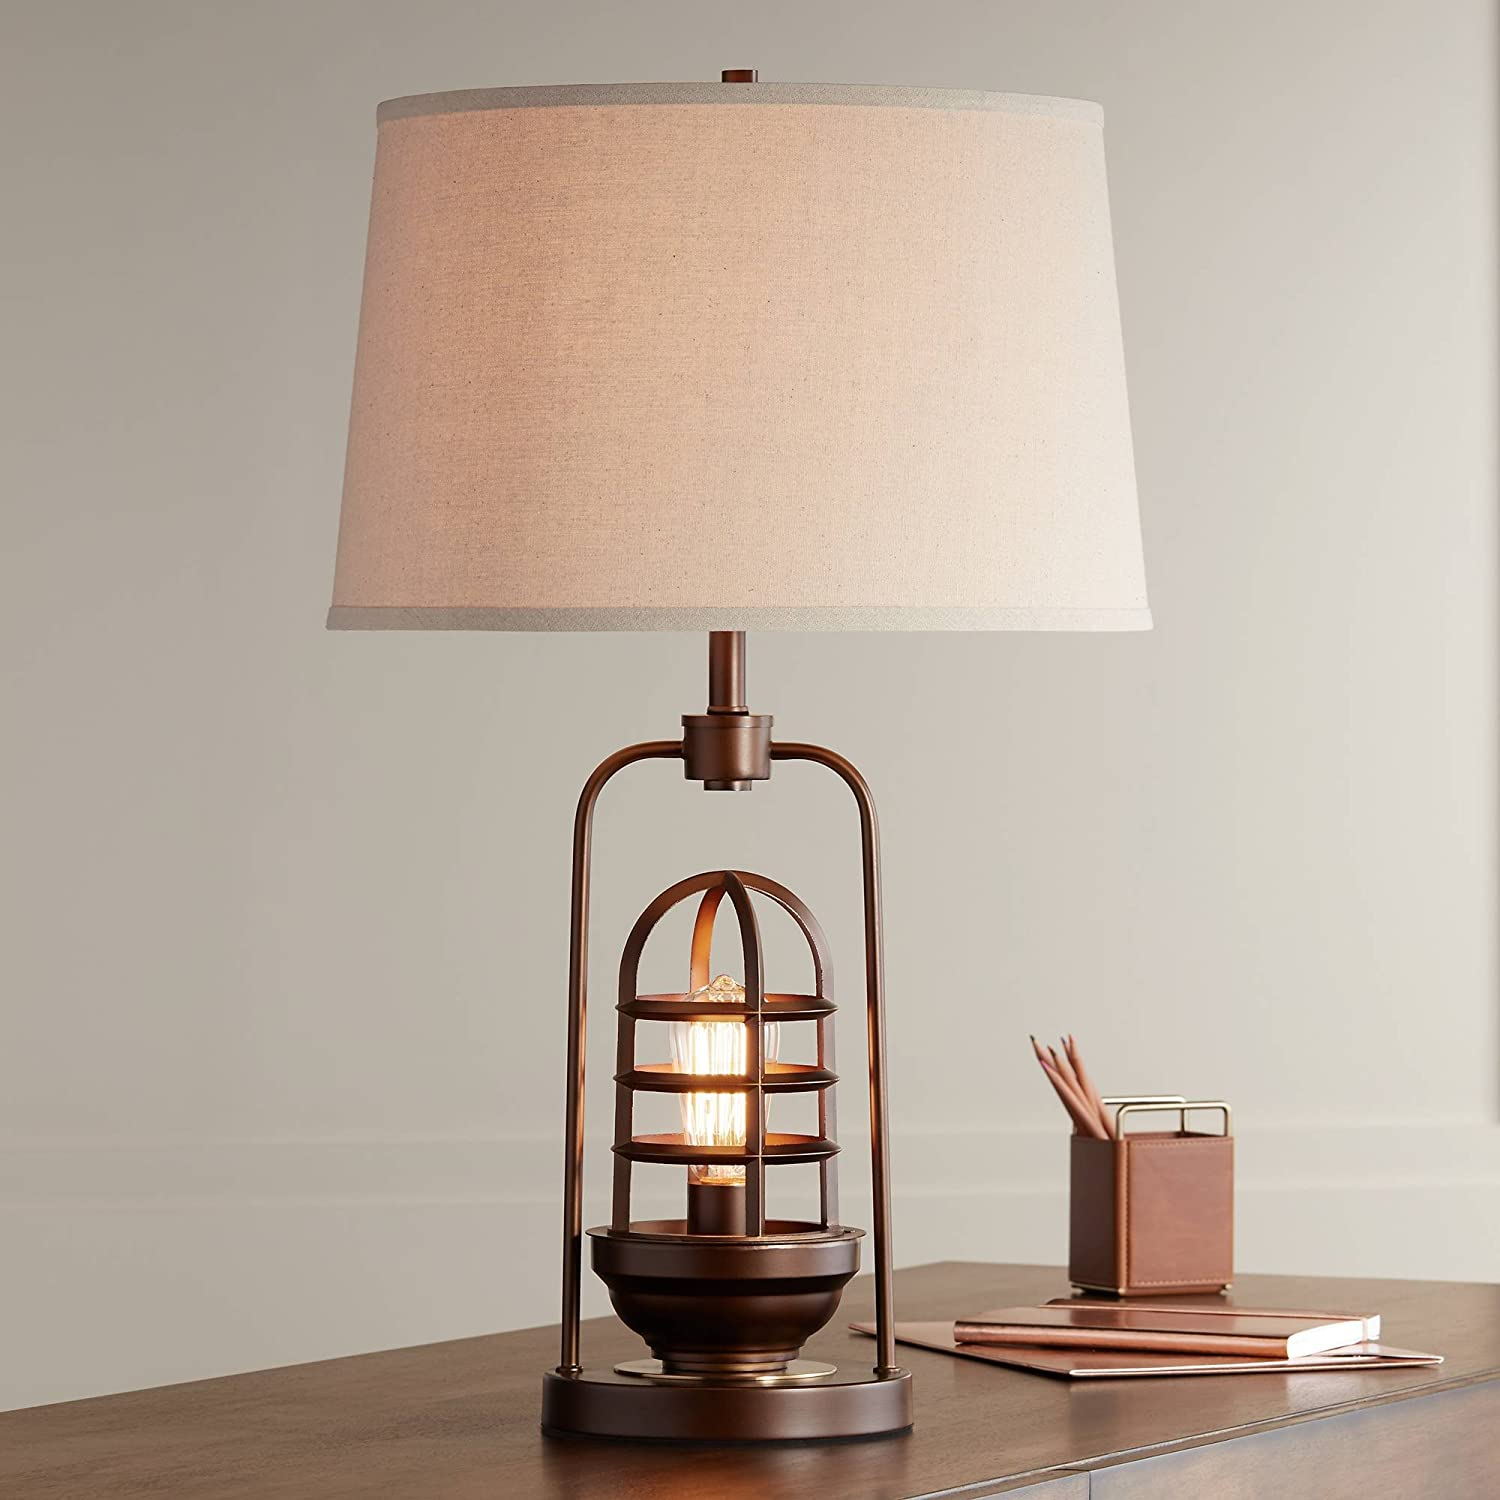 Hobie Industrial 40% OFF Cheap Sale Table Lamp with LED Antique Sacramento Mall Edison B Nightlight